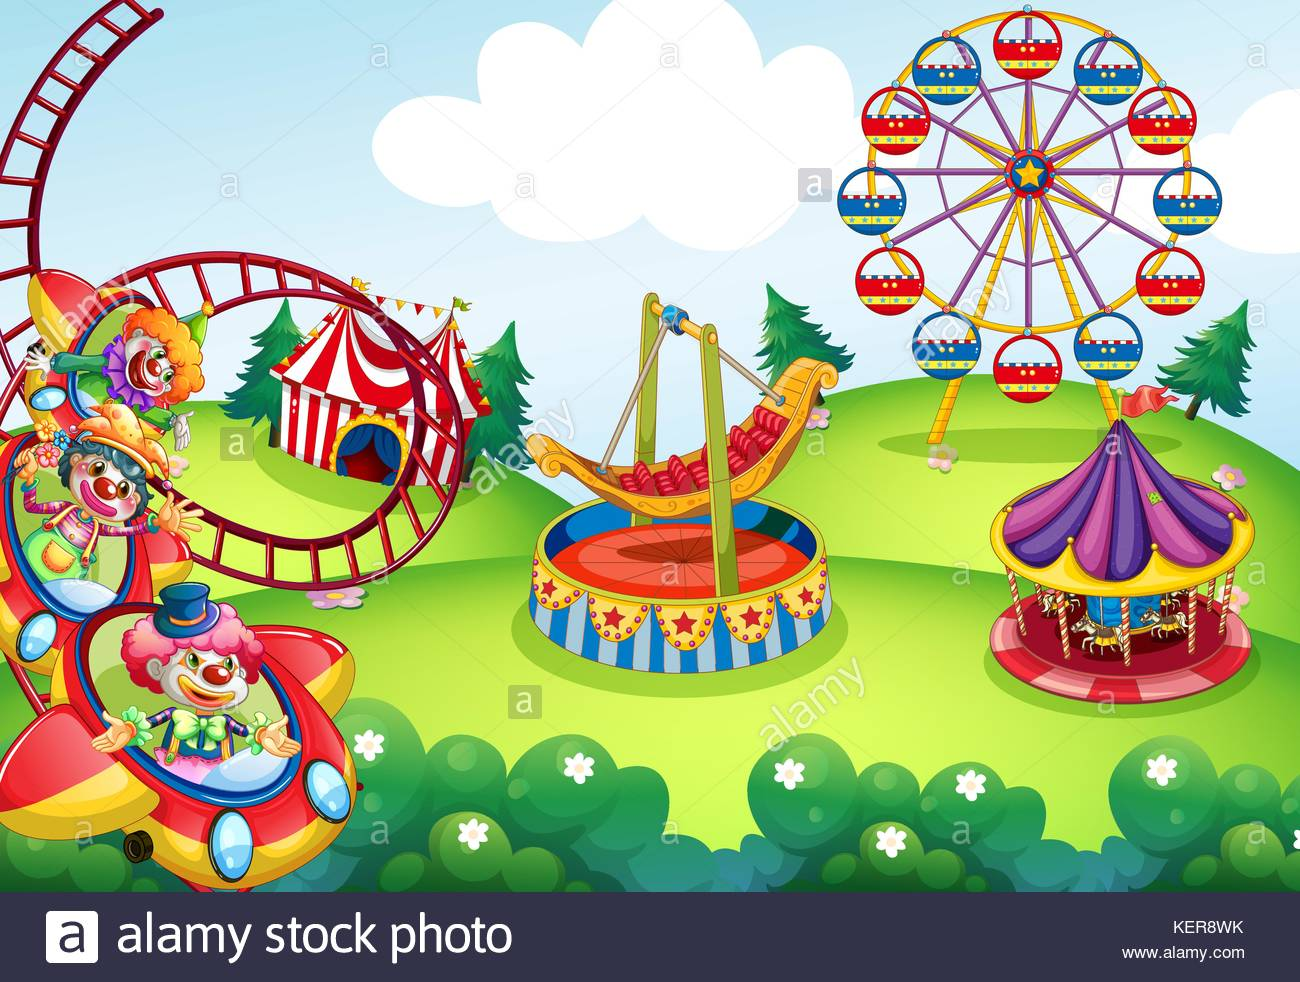 Wallpaper of circus and theme park design Stock Vector Art 1300x982